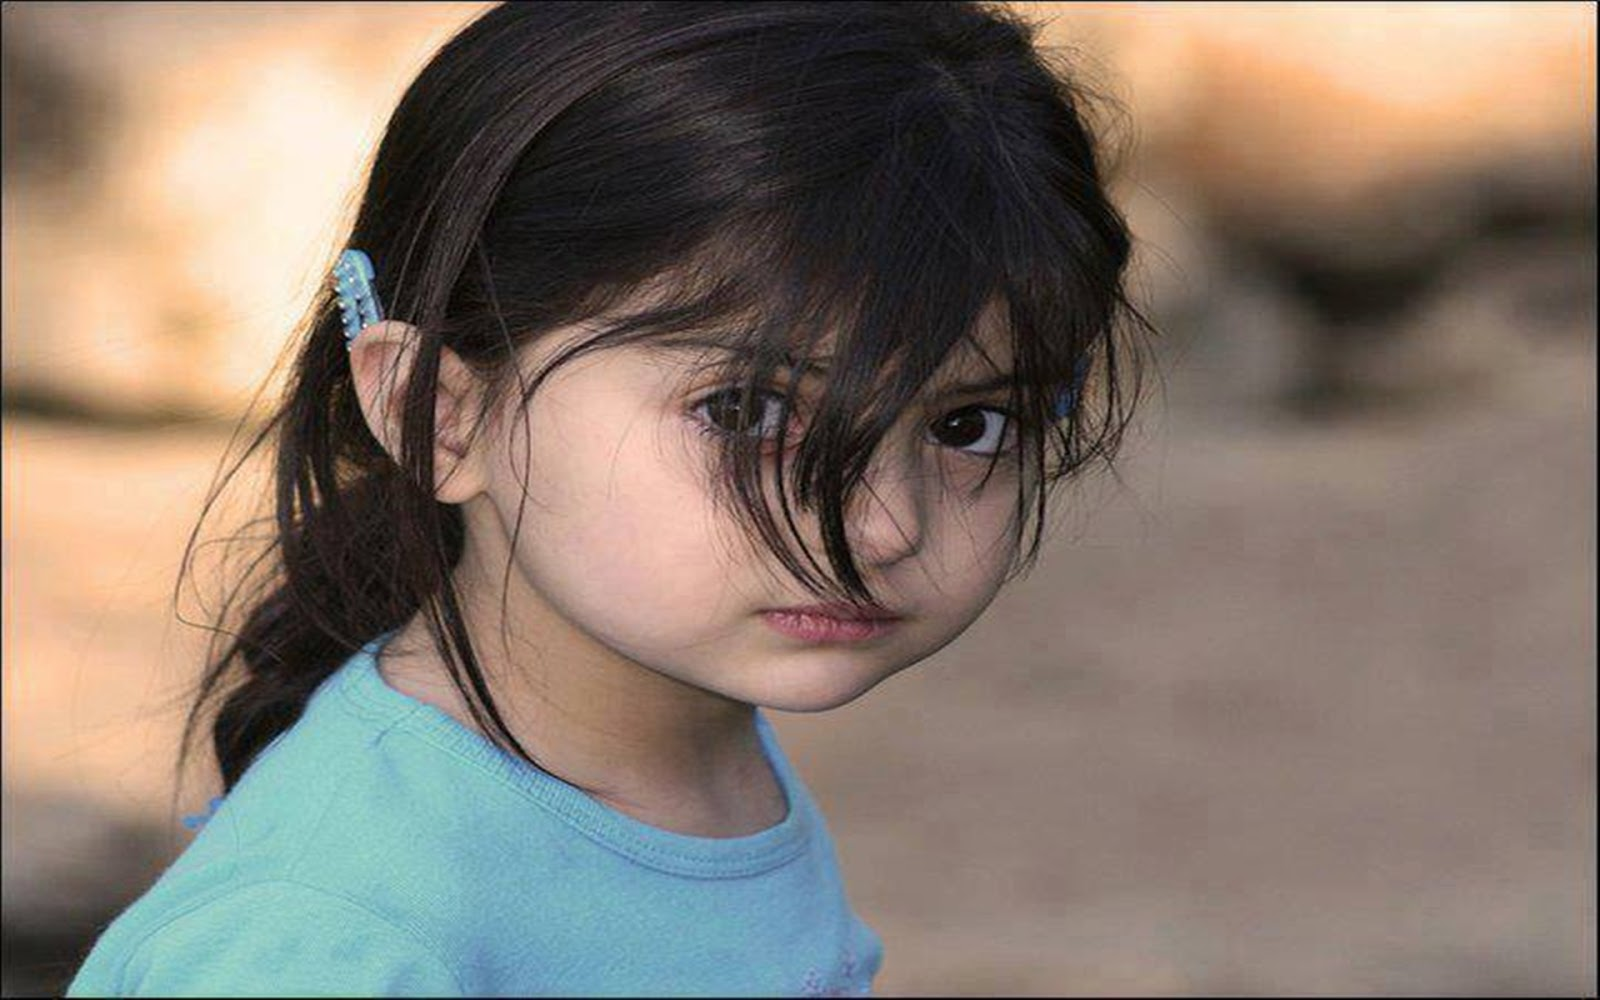 Hd Wallpaper Girls Wallpapers For Facebook Profile: World Cutest Baby Wallpapers 2014